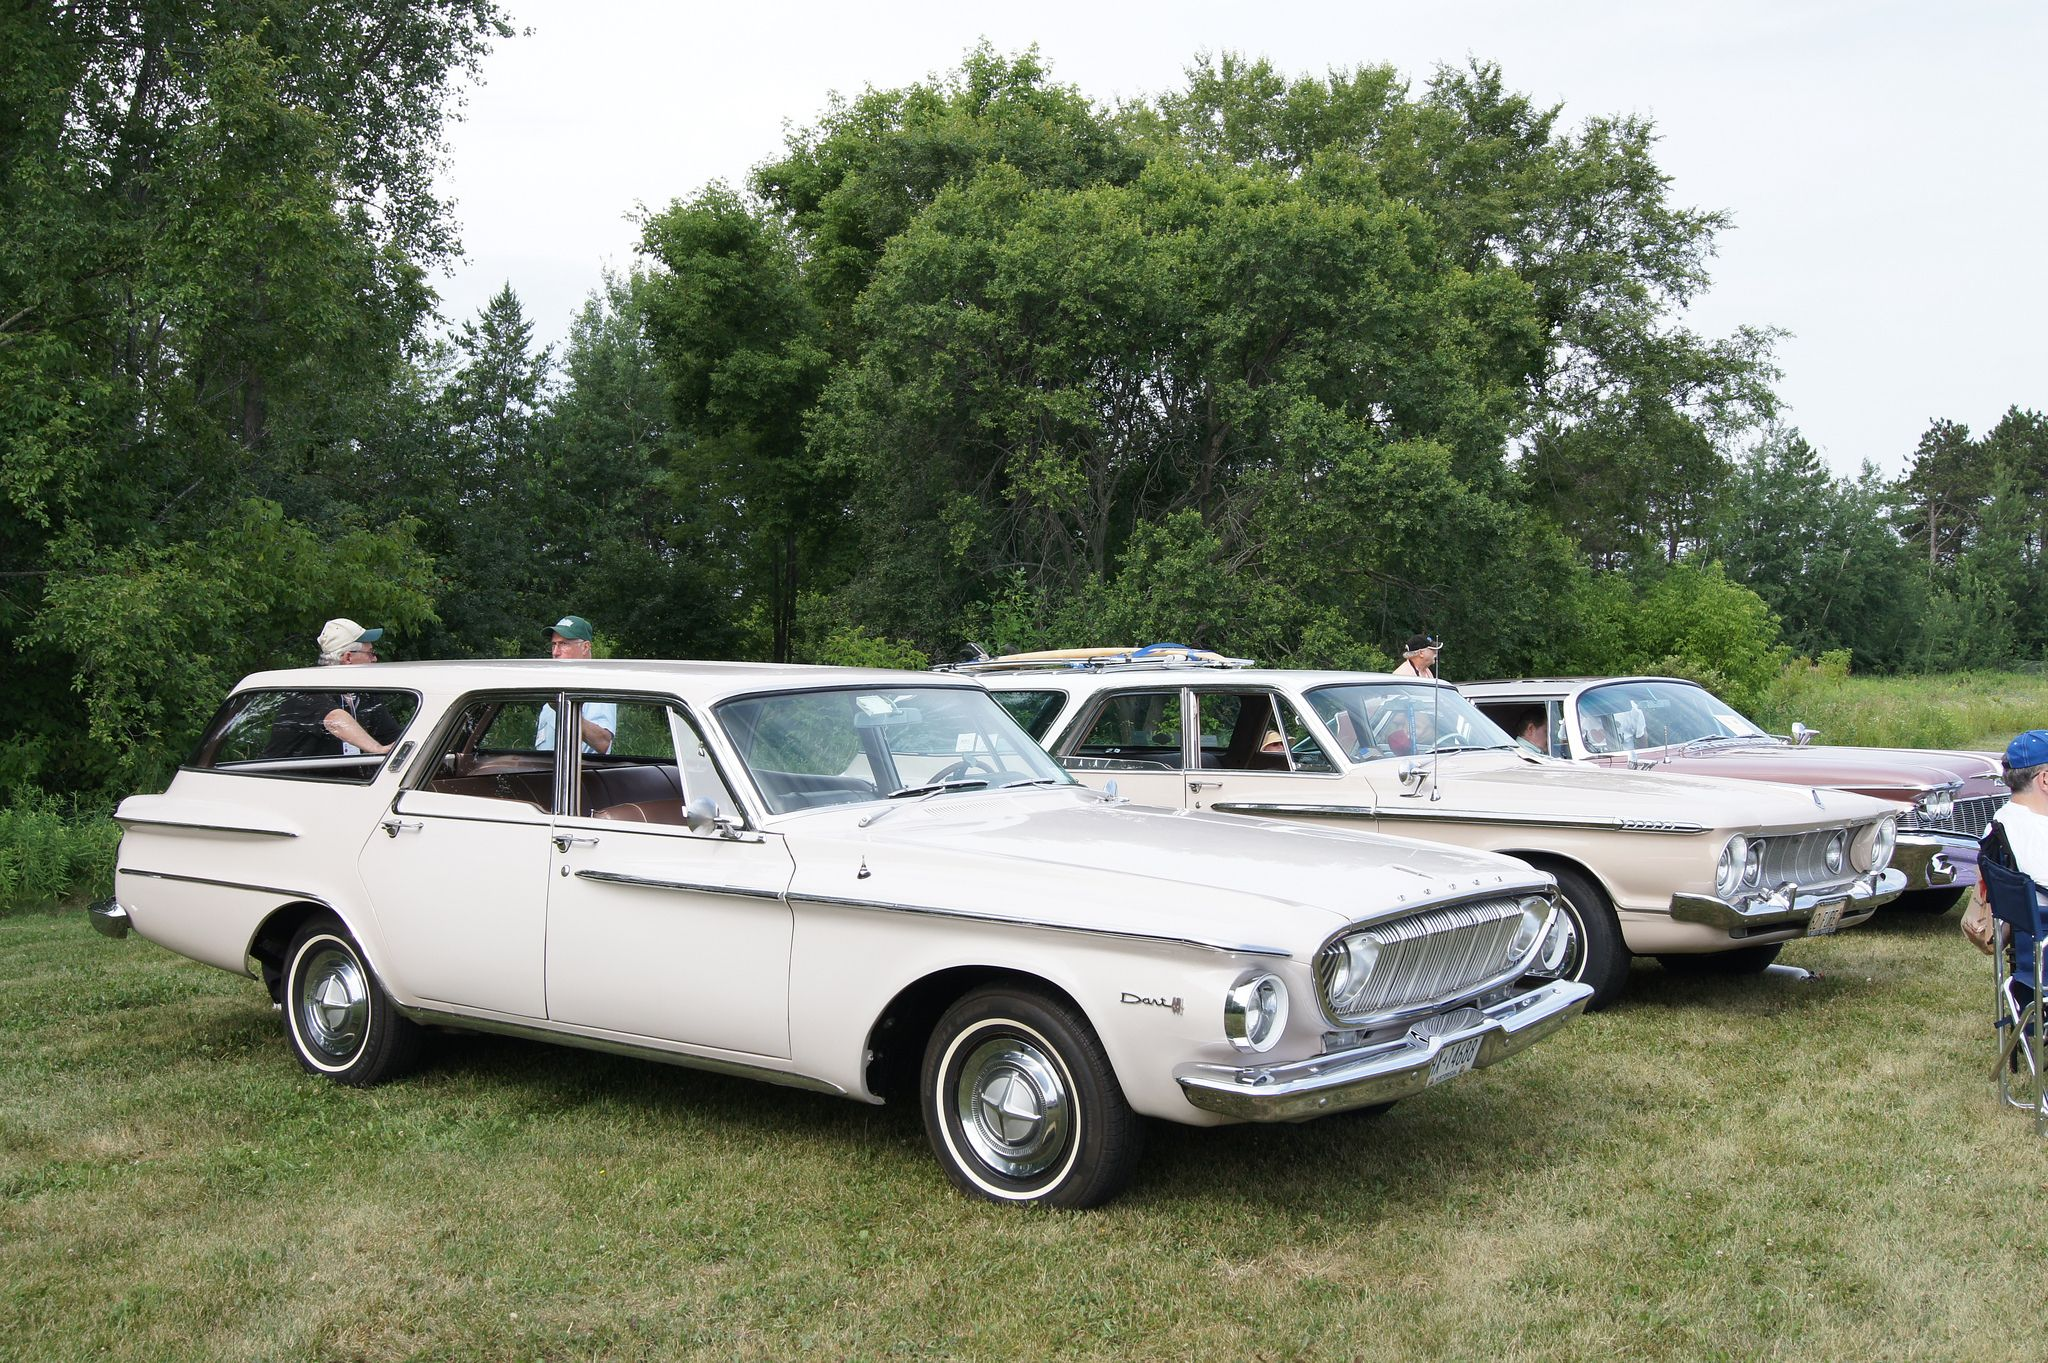 1962 Dodge Dart 440 & Plymouth Fury Station Wagon Dodge Wagon, Plymouth  Fury, Cars